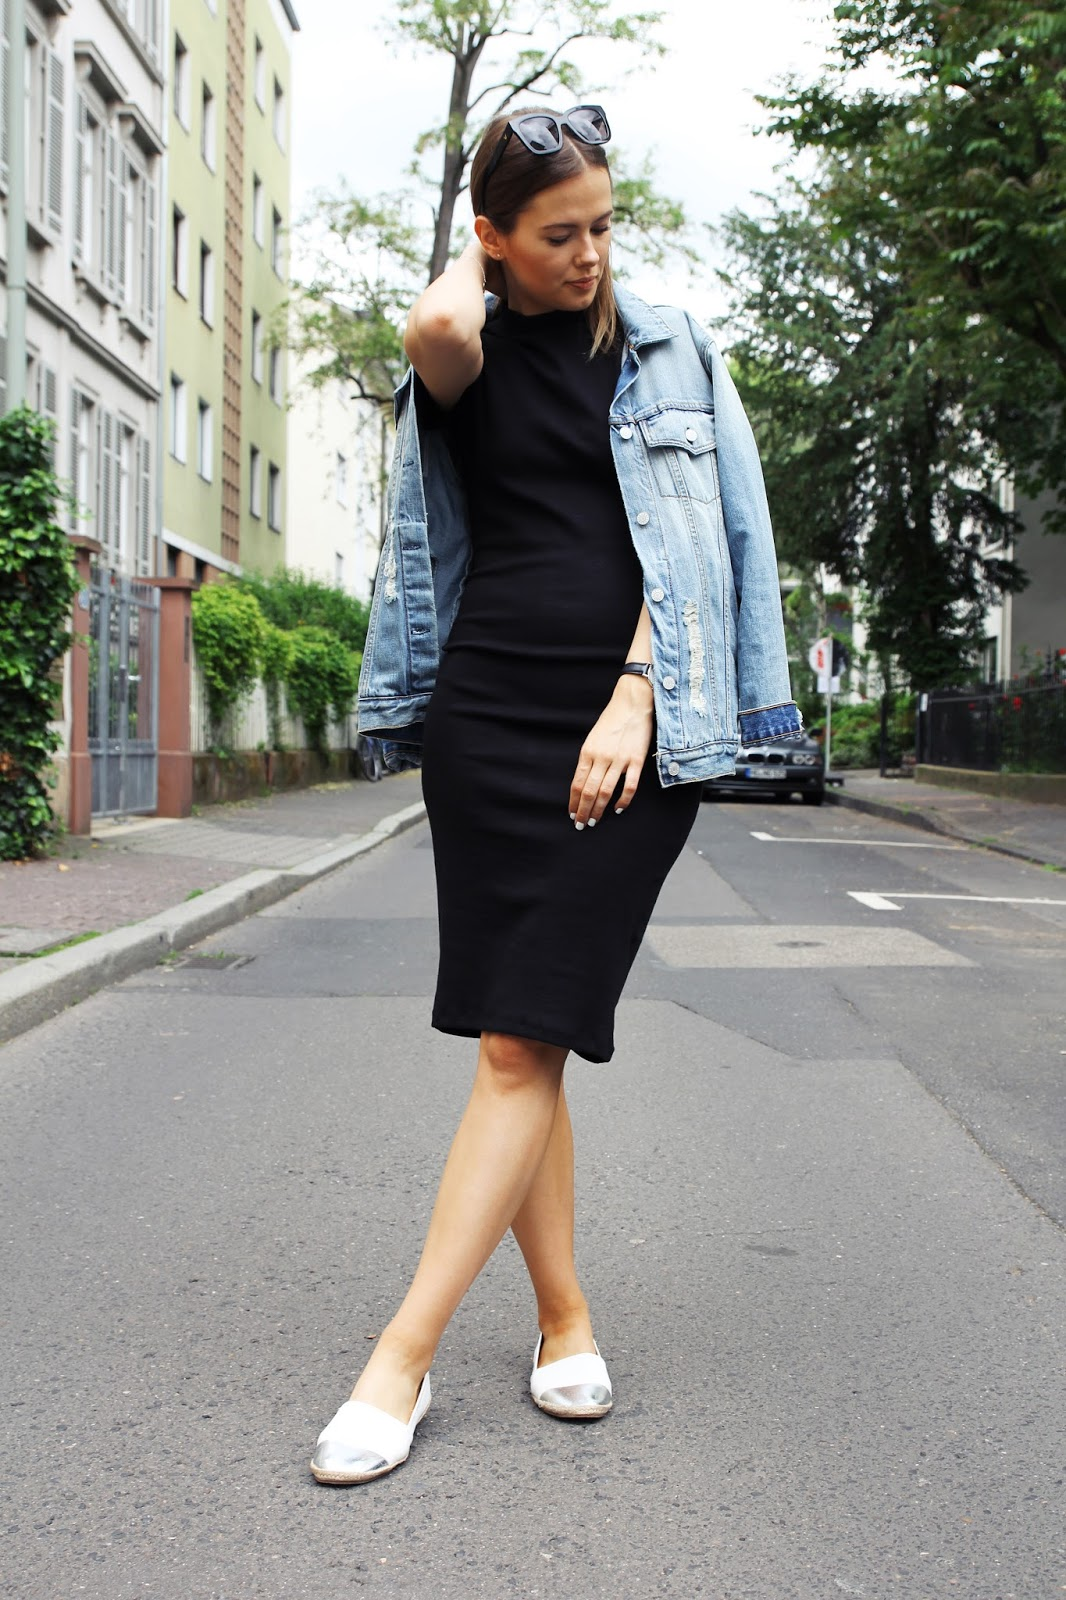 How to style a denim jacket etcetera how to wear a bodycon dress without looking too riské black dress jean jacket women s style we asked 17 people to style a denim jacket and the results are bad maternity black dress style by alina. Related. Trending Posts. Sitka Gear Incinerator Jacket.